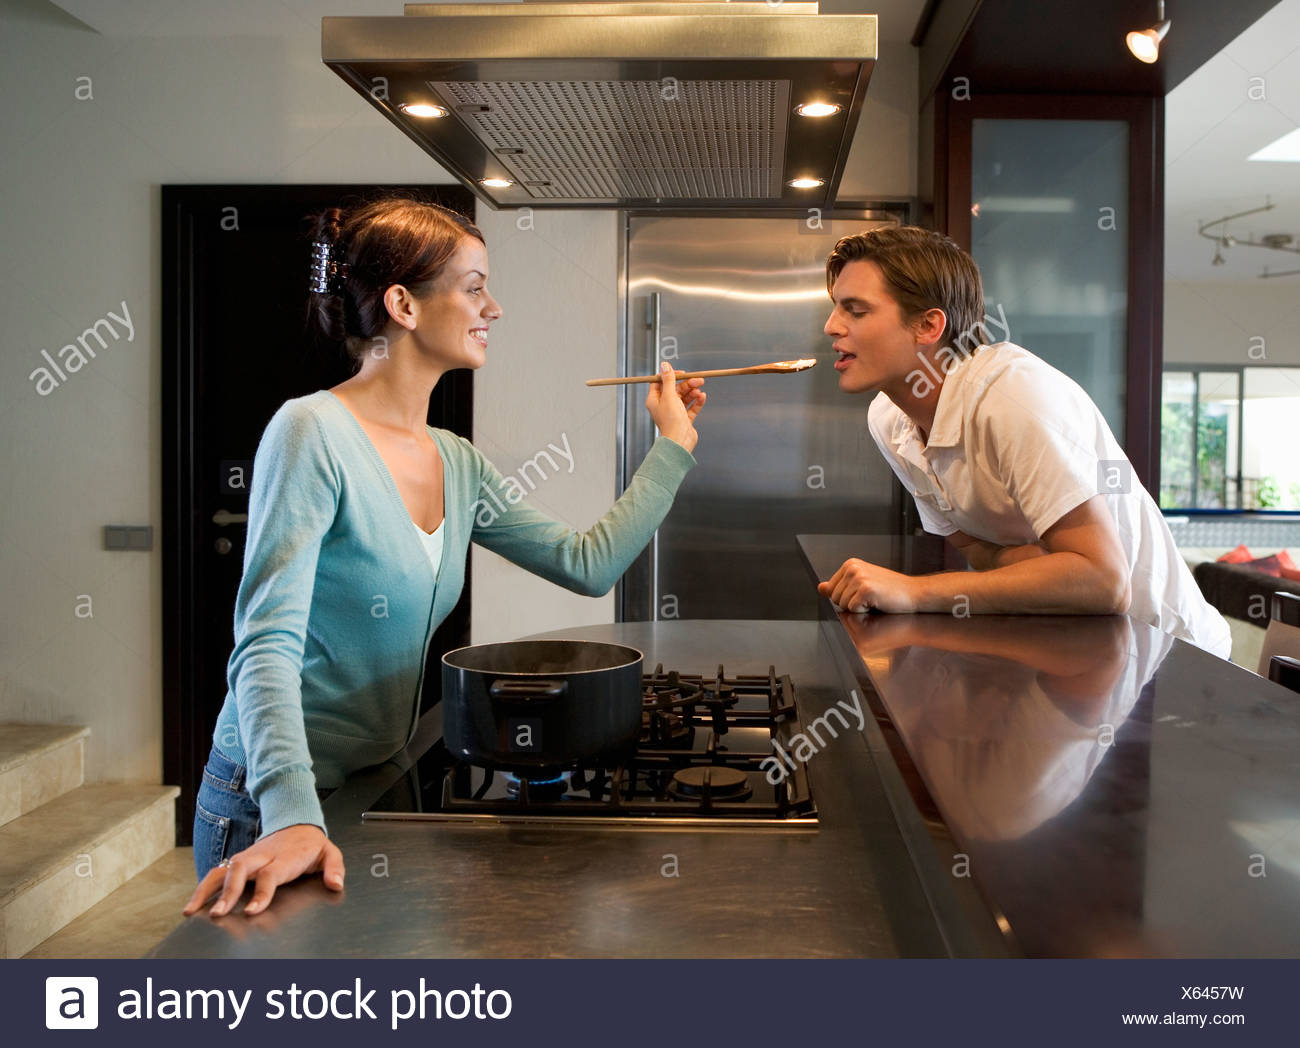 A young couple at home in their kitchen - Stock Image